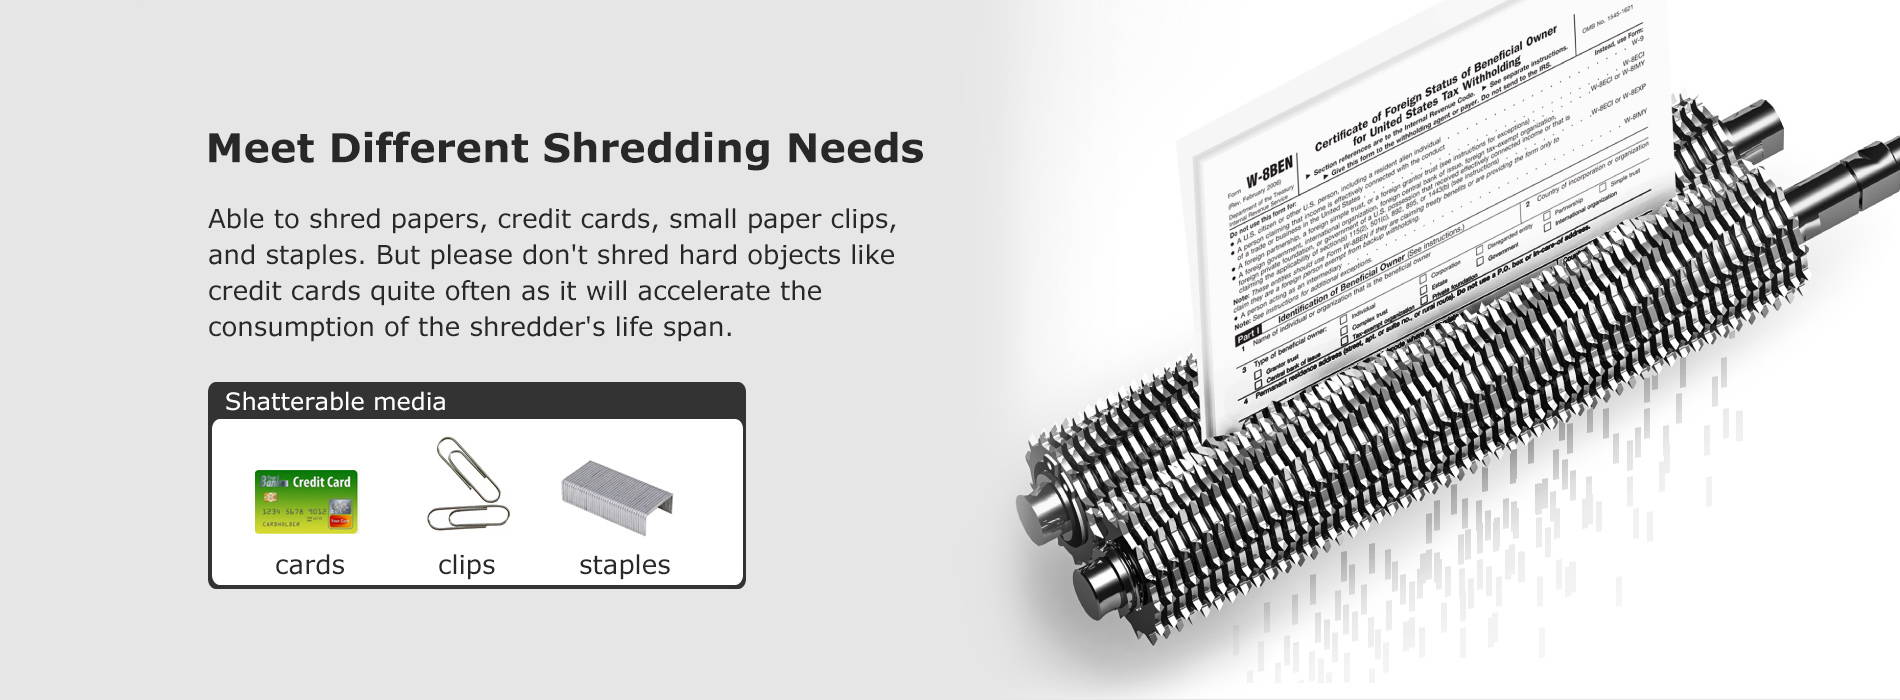 Meet Different Shredding Needs Able to shred papers, credit cards, small paper clips, and staples. But please don't shred hard objects like credit cards quite often as it will accelerate the consumption of the shredder's life span.